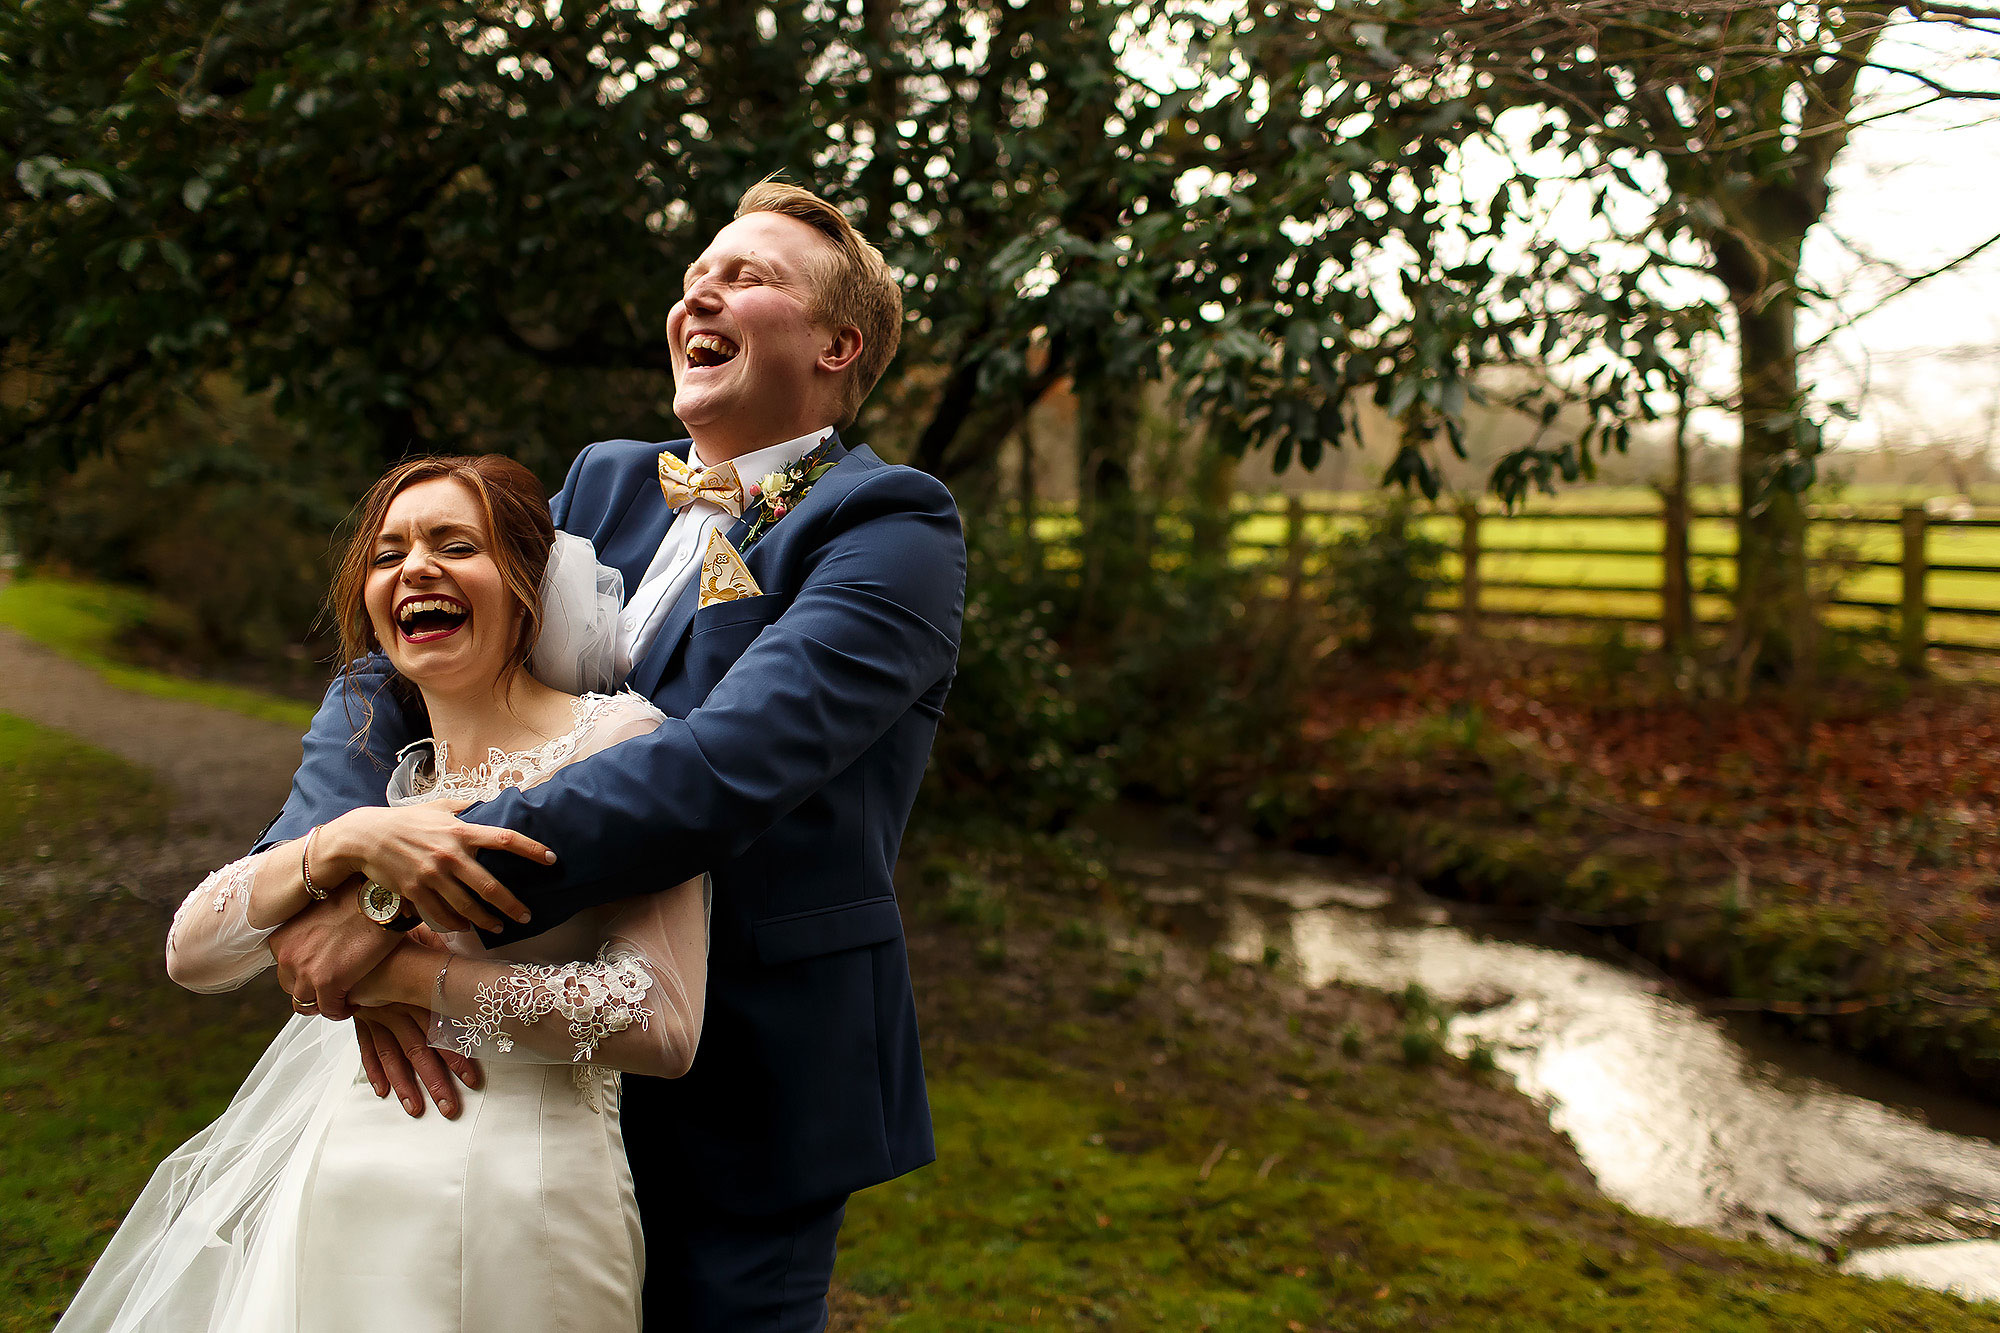 Bride with dark lipstick and long veil laughing in the arms of her groom wearing blue suit and yellow bow tie belly laughing in the gardens of Mitton Hall | Mitton Hall wedding photographs by Toni Darcy Photography